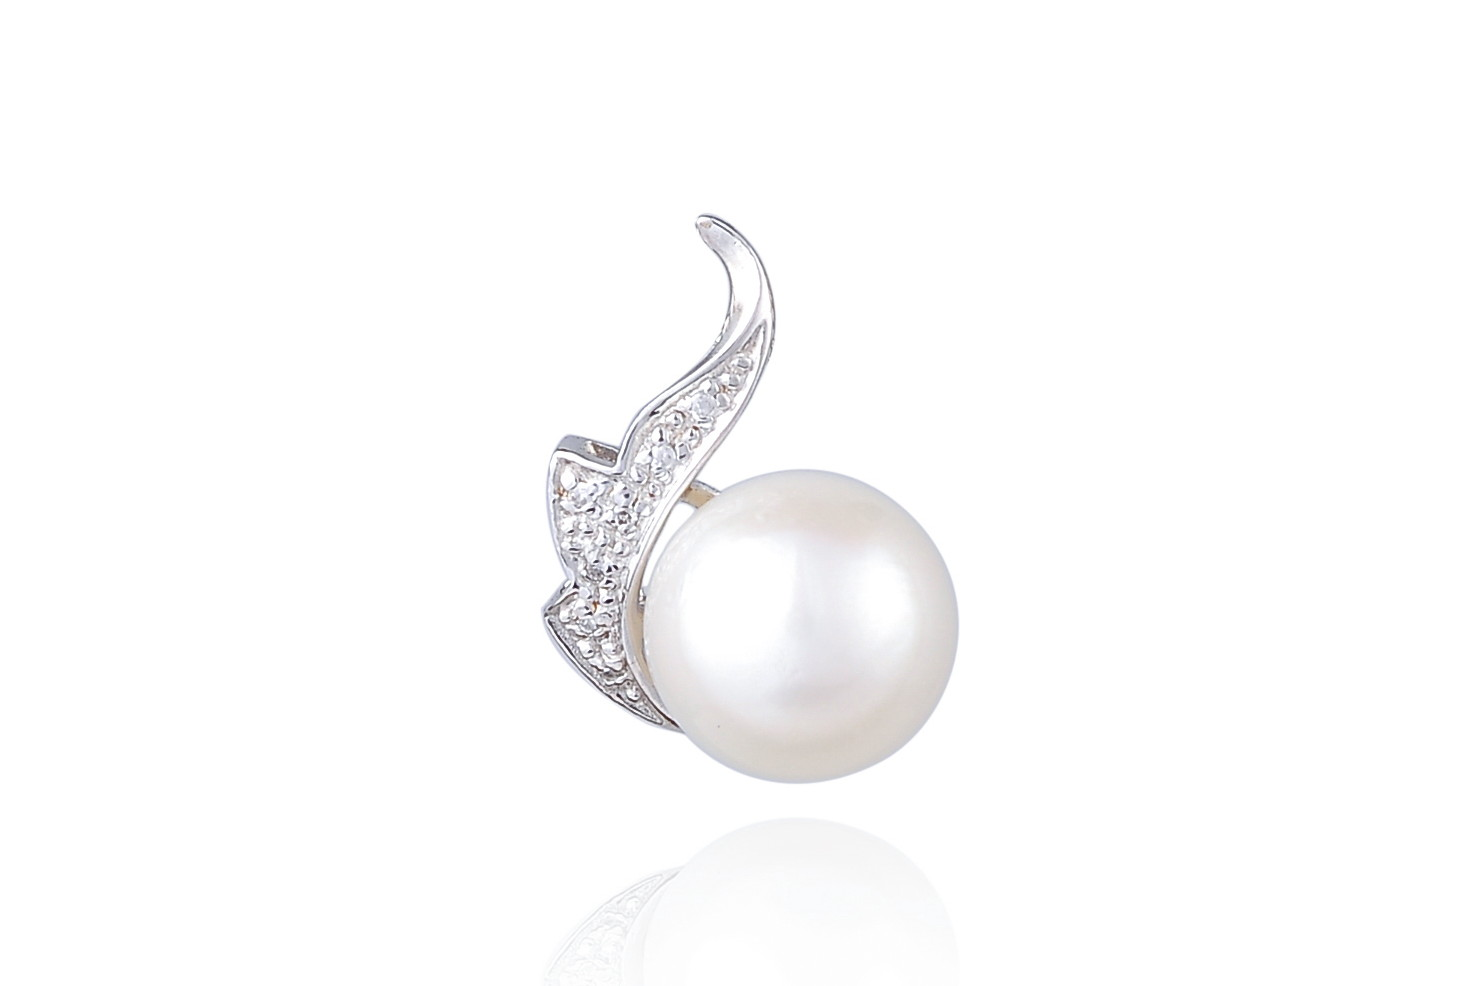 12mm AA+ White South Sea Pearl Pendant -pn26